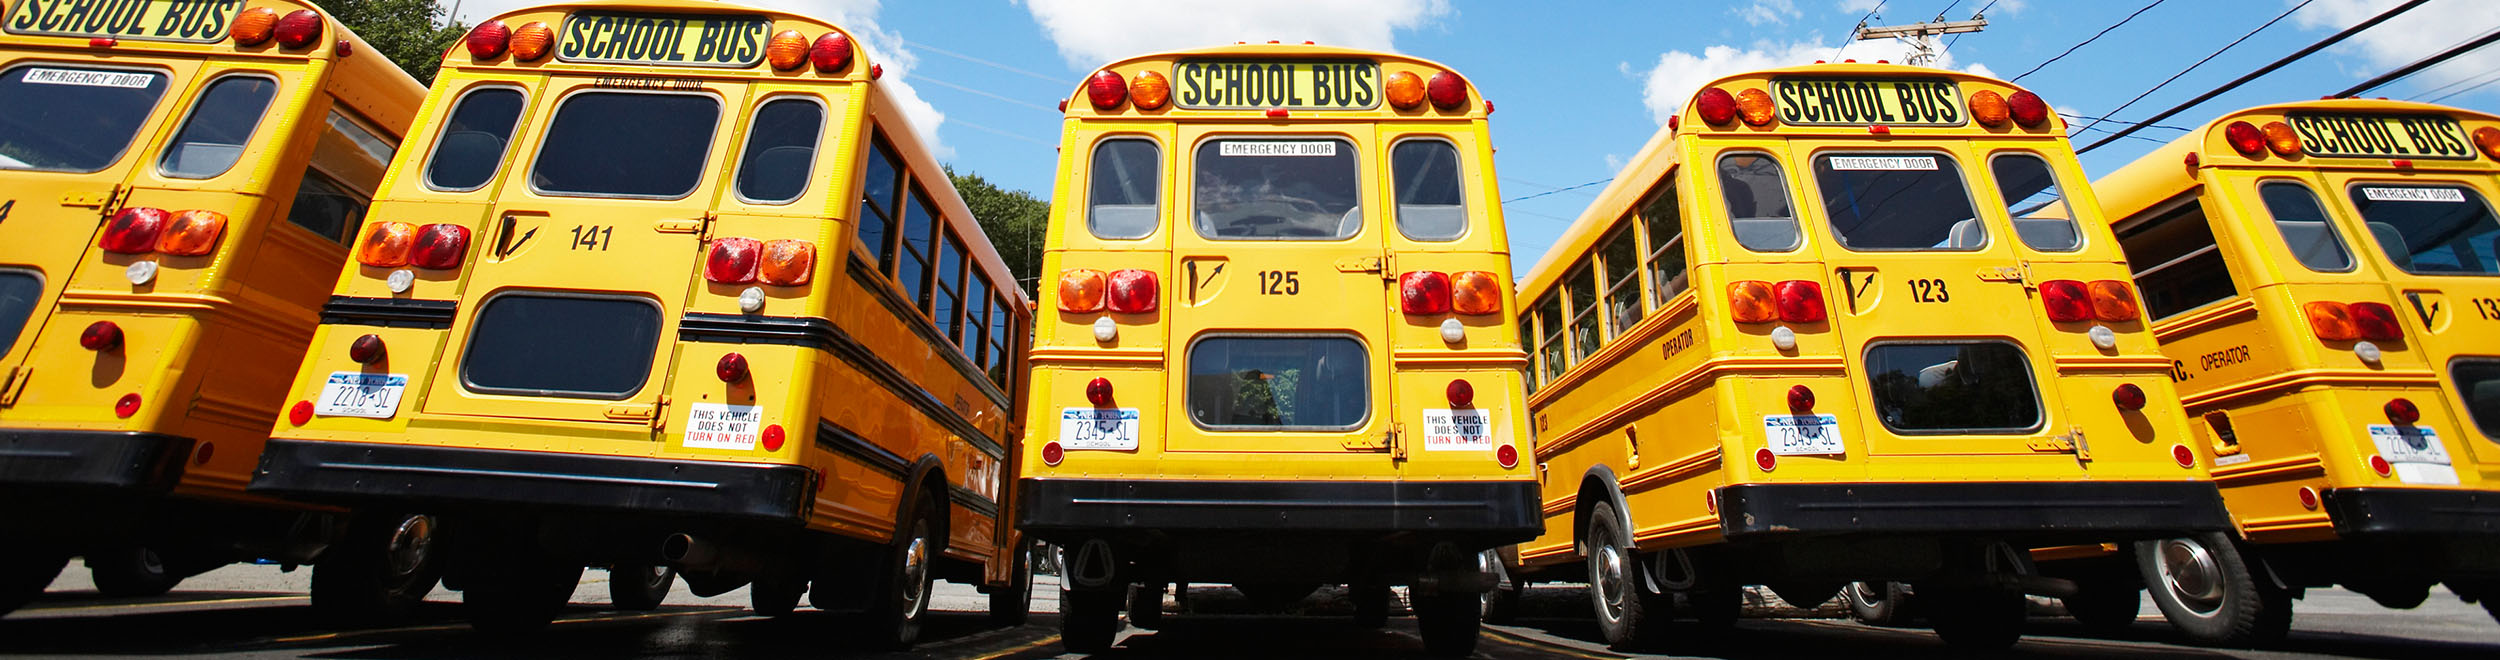 School Bus Routing Software Solution